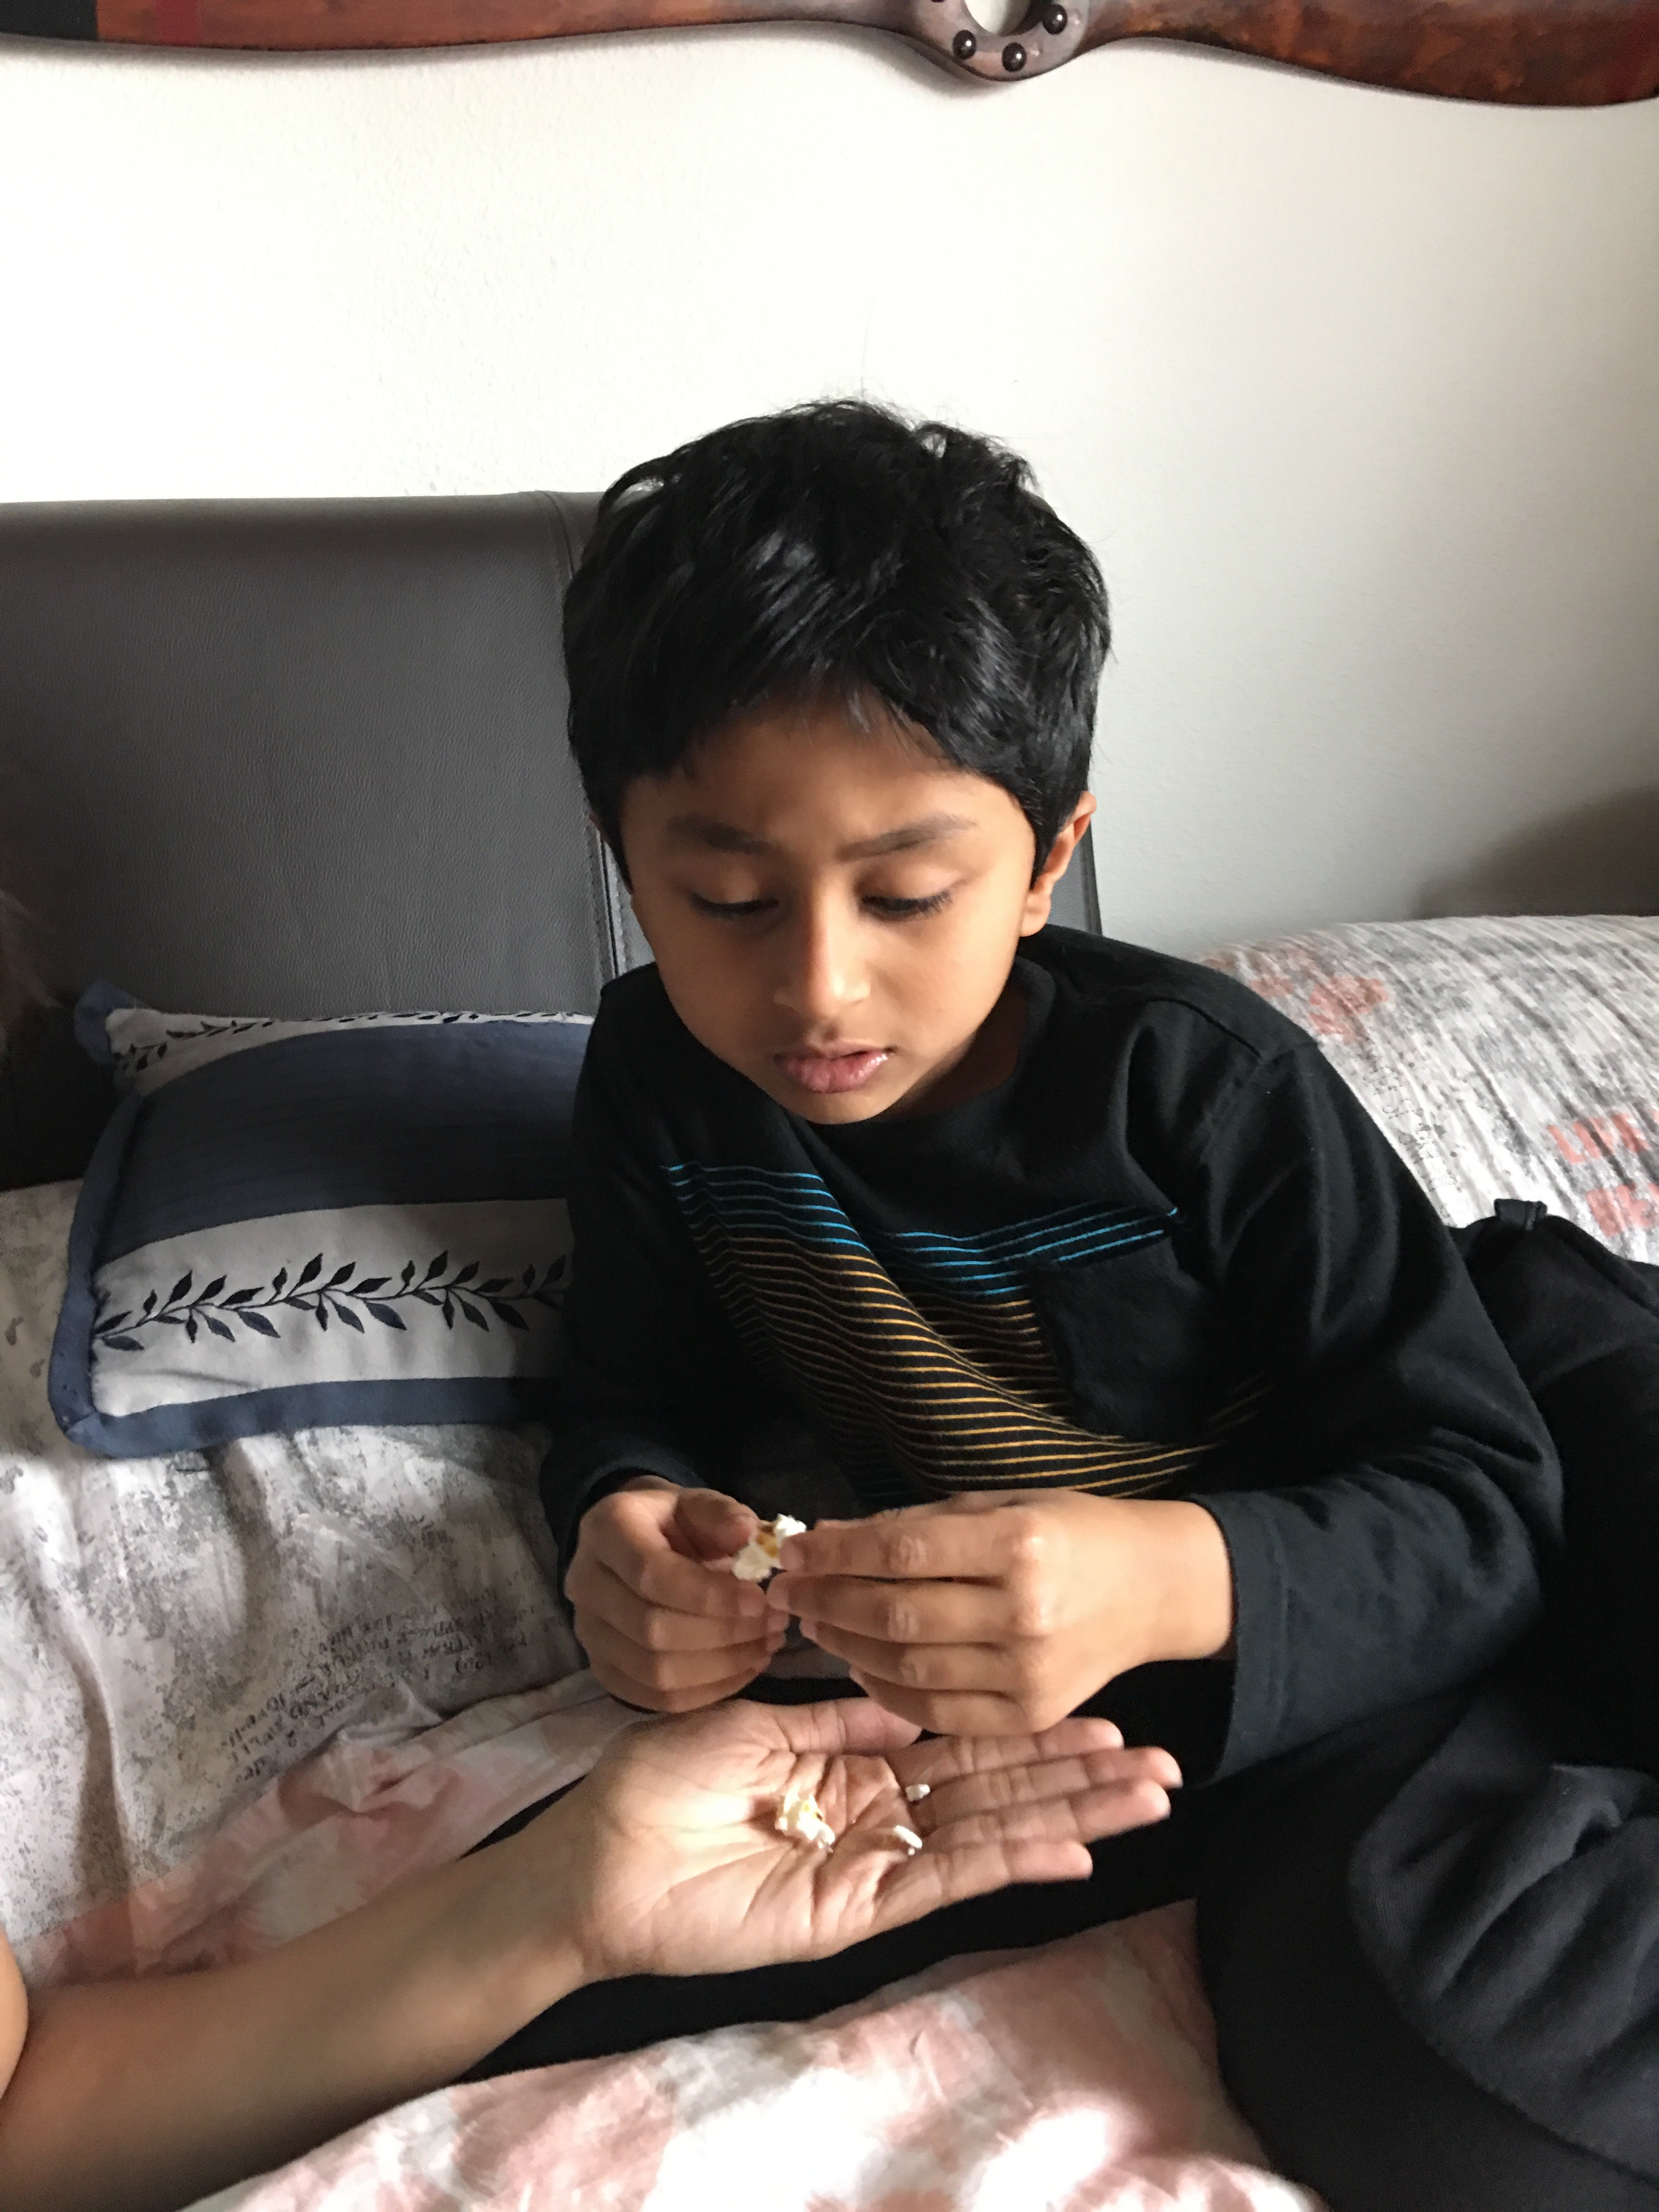 Boy on bed, taking popcorn from someone's hand